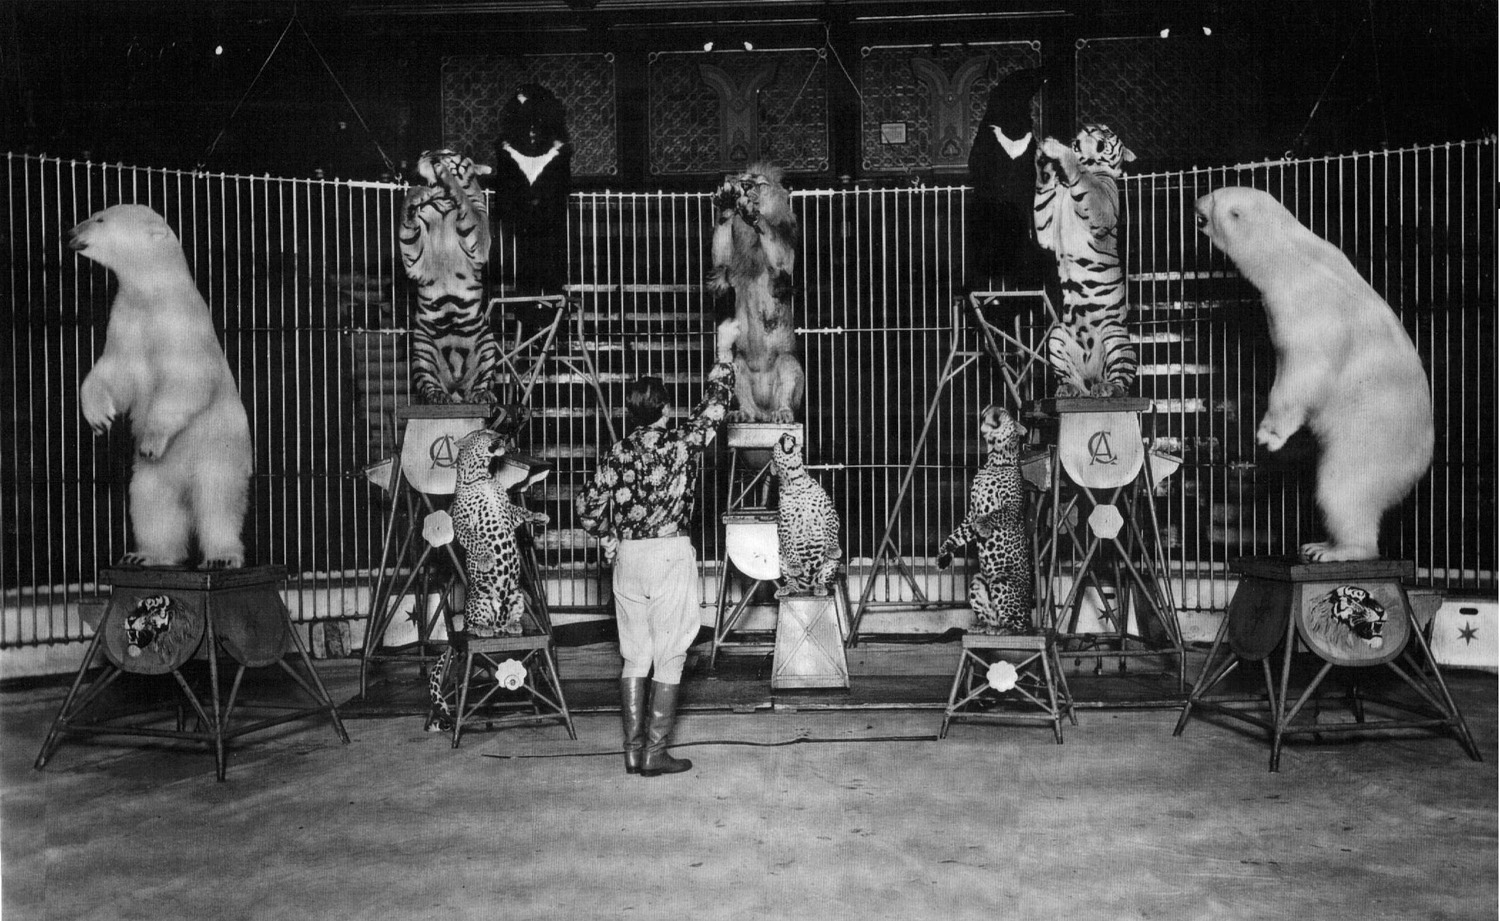 Blackpool Tower Elephants Act at Blackpool's Tower